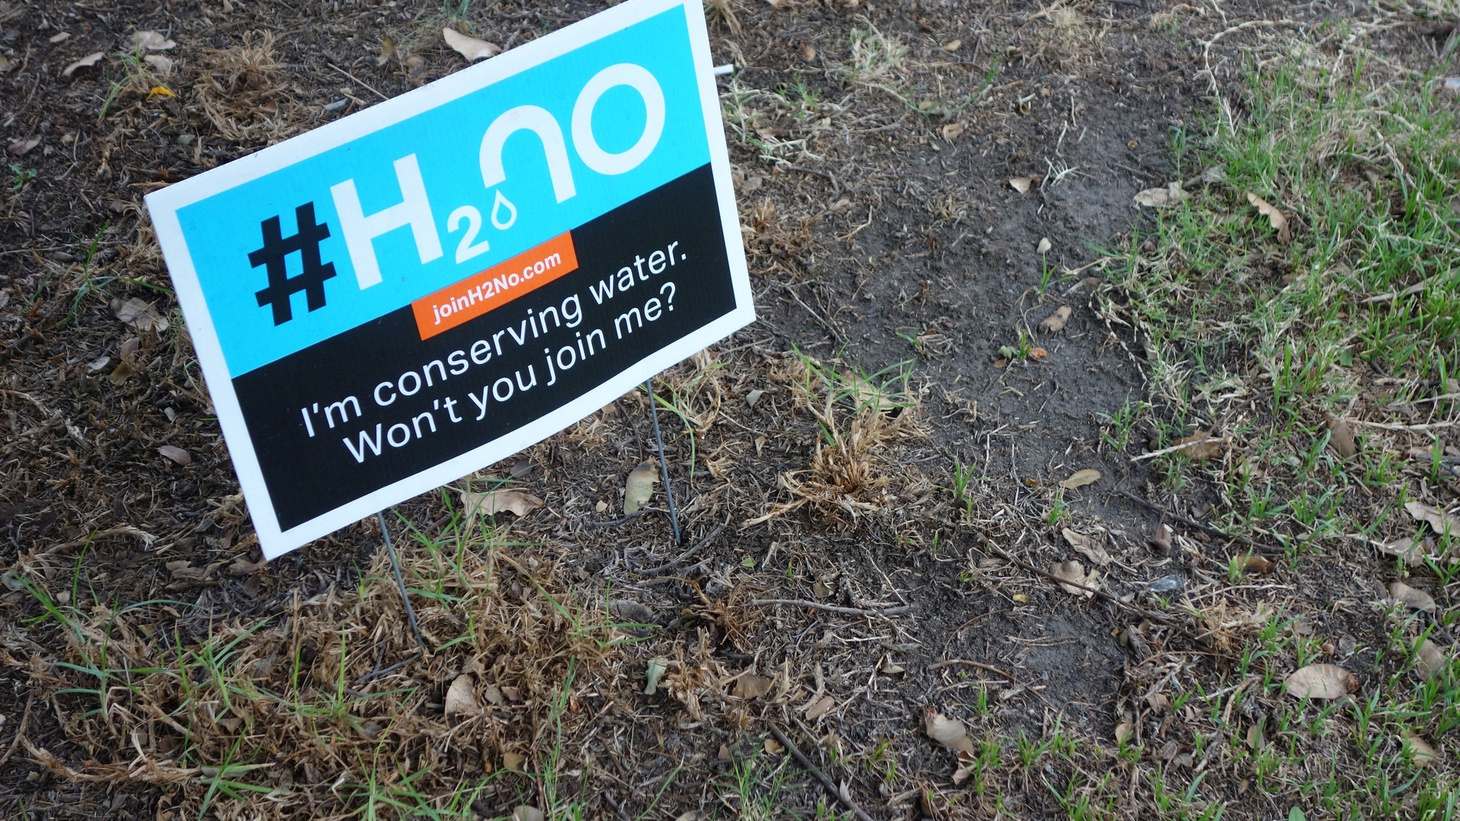 Climate change and a shortage of water will change California in many ways — including the way it looks. Now that Governor Brown has ordered 25% cutbacks in urban areas, one imminent casualty is the green, grassy lawn.